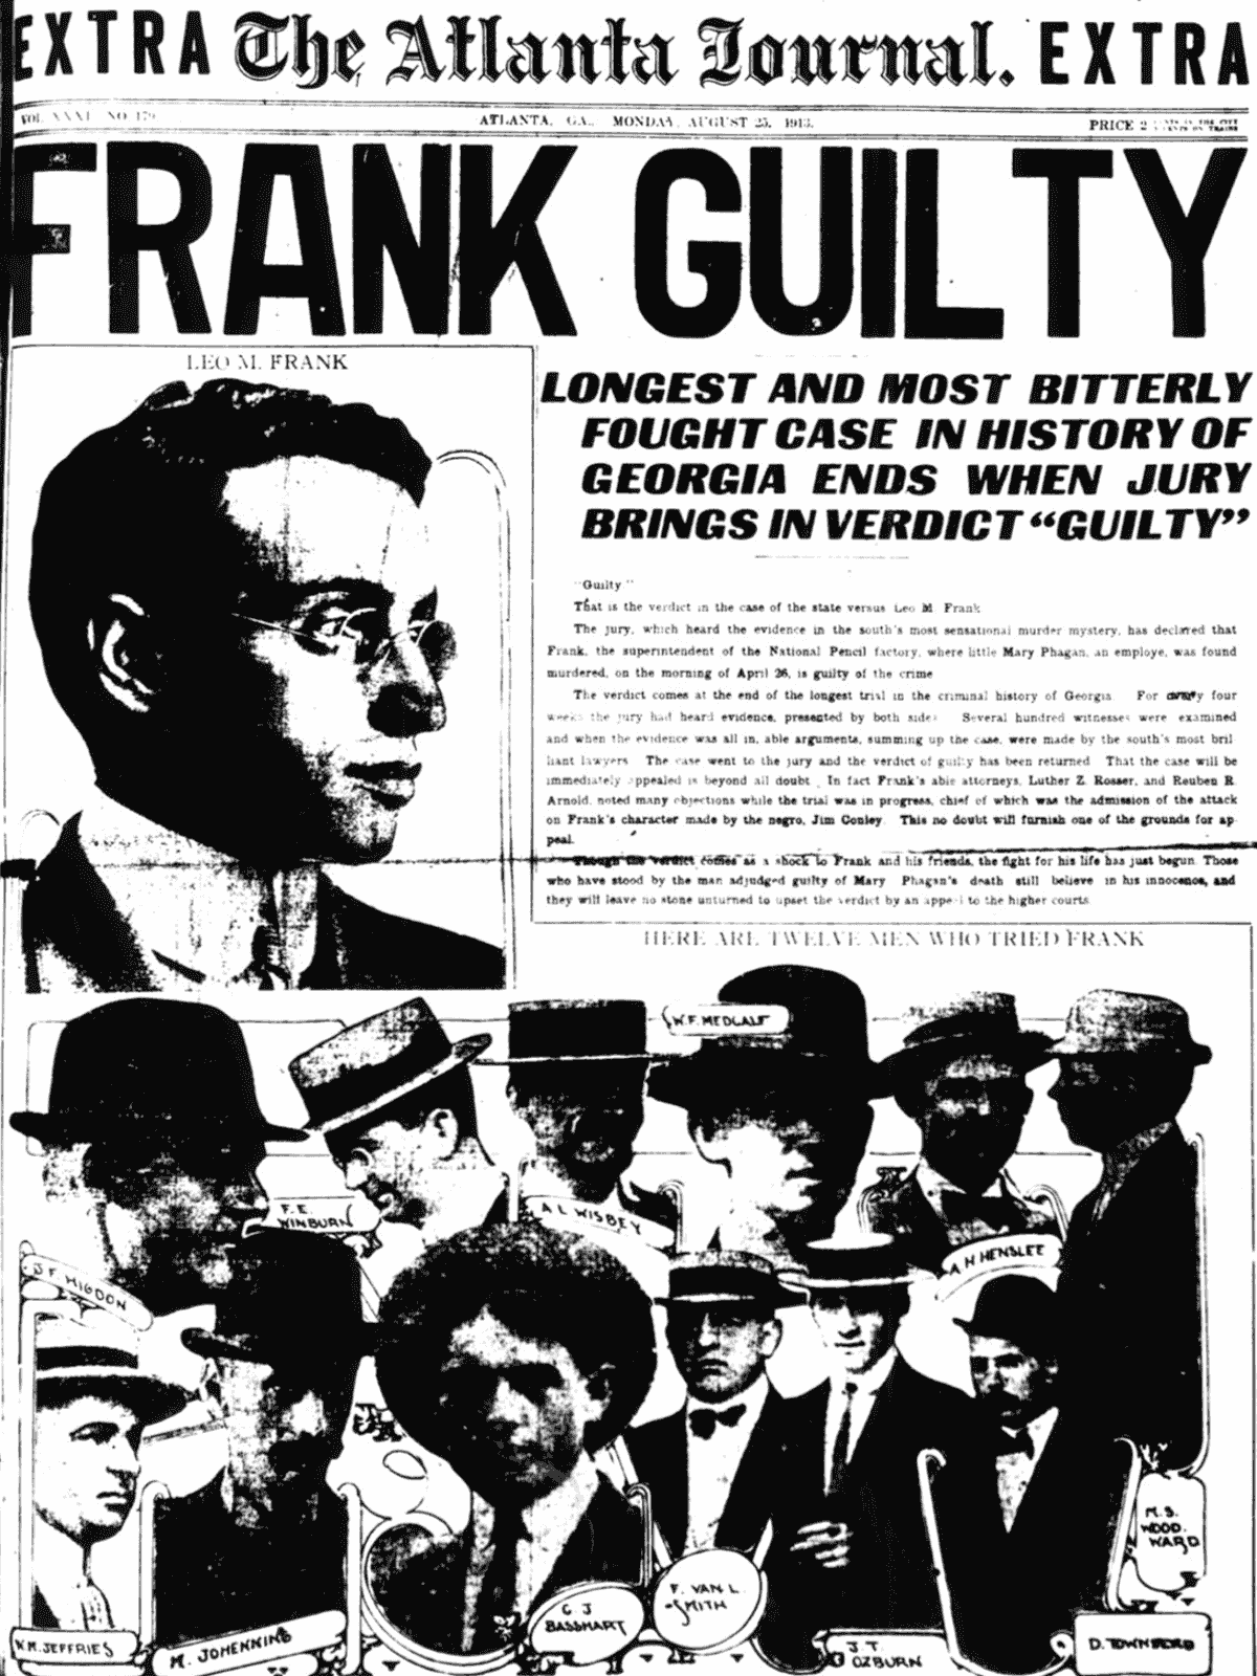 Newspapers reported every detail of the trial with glee